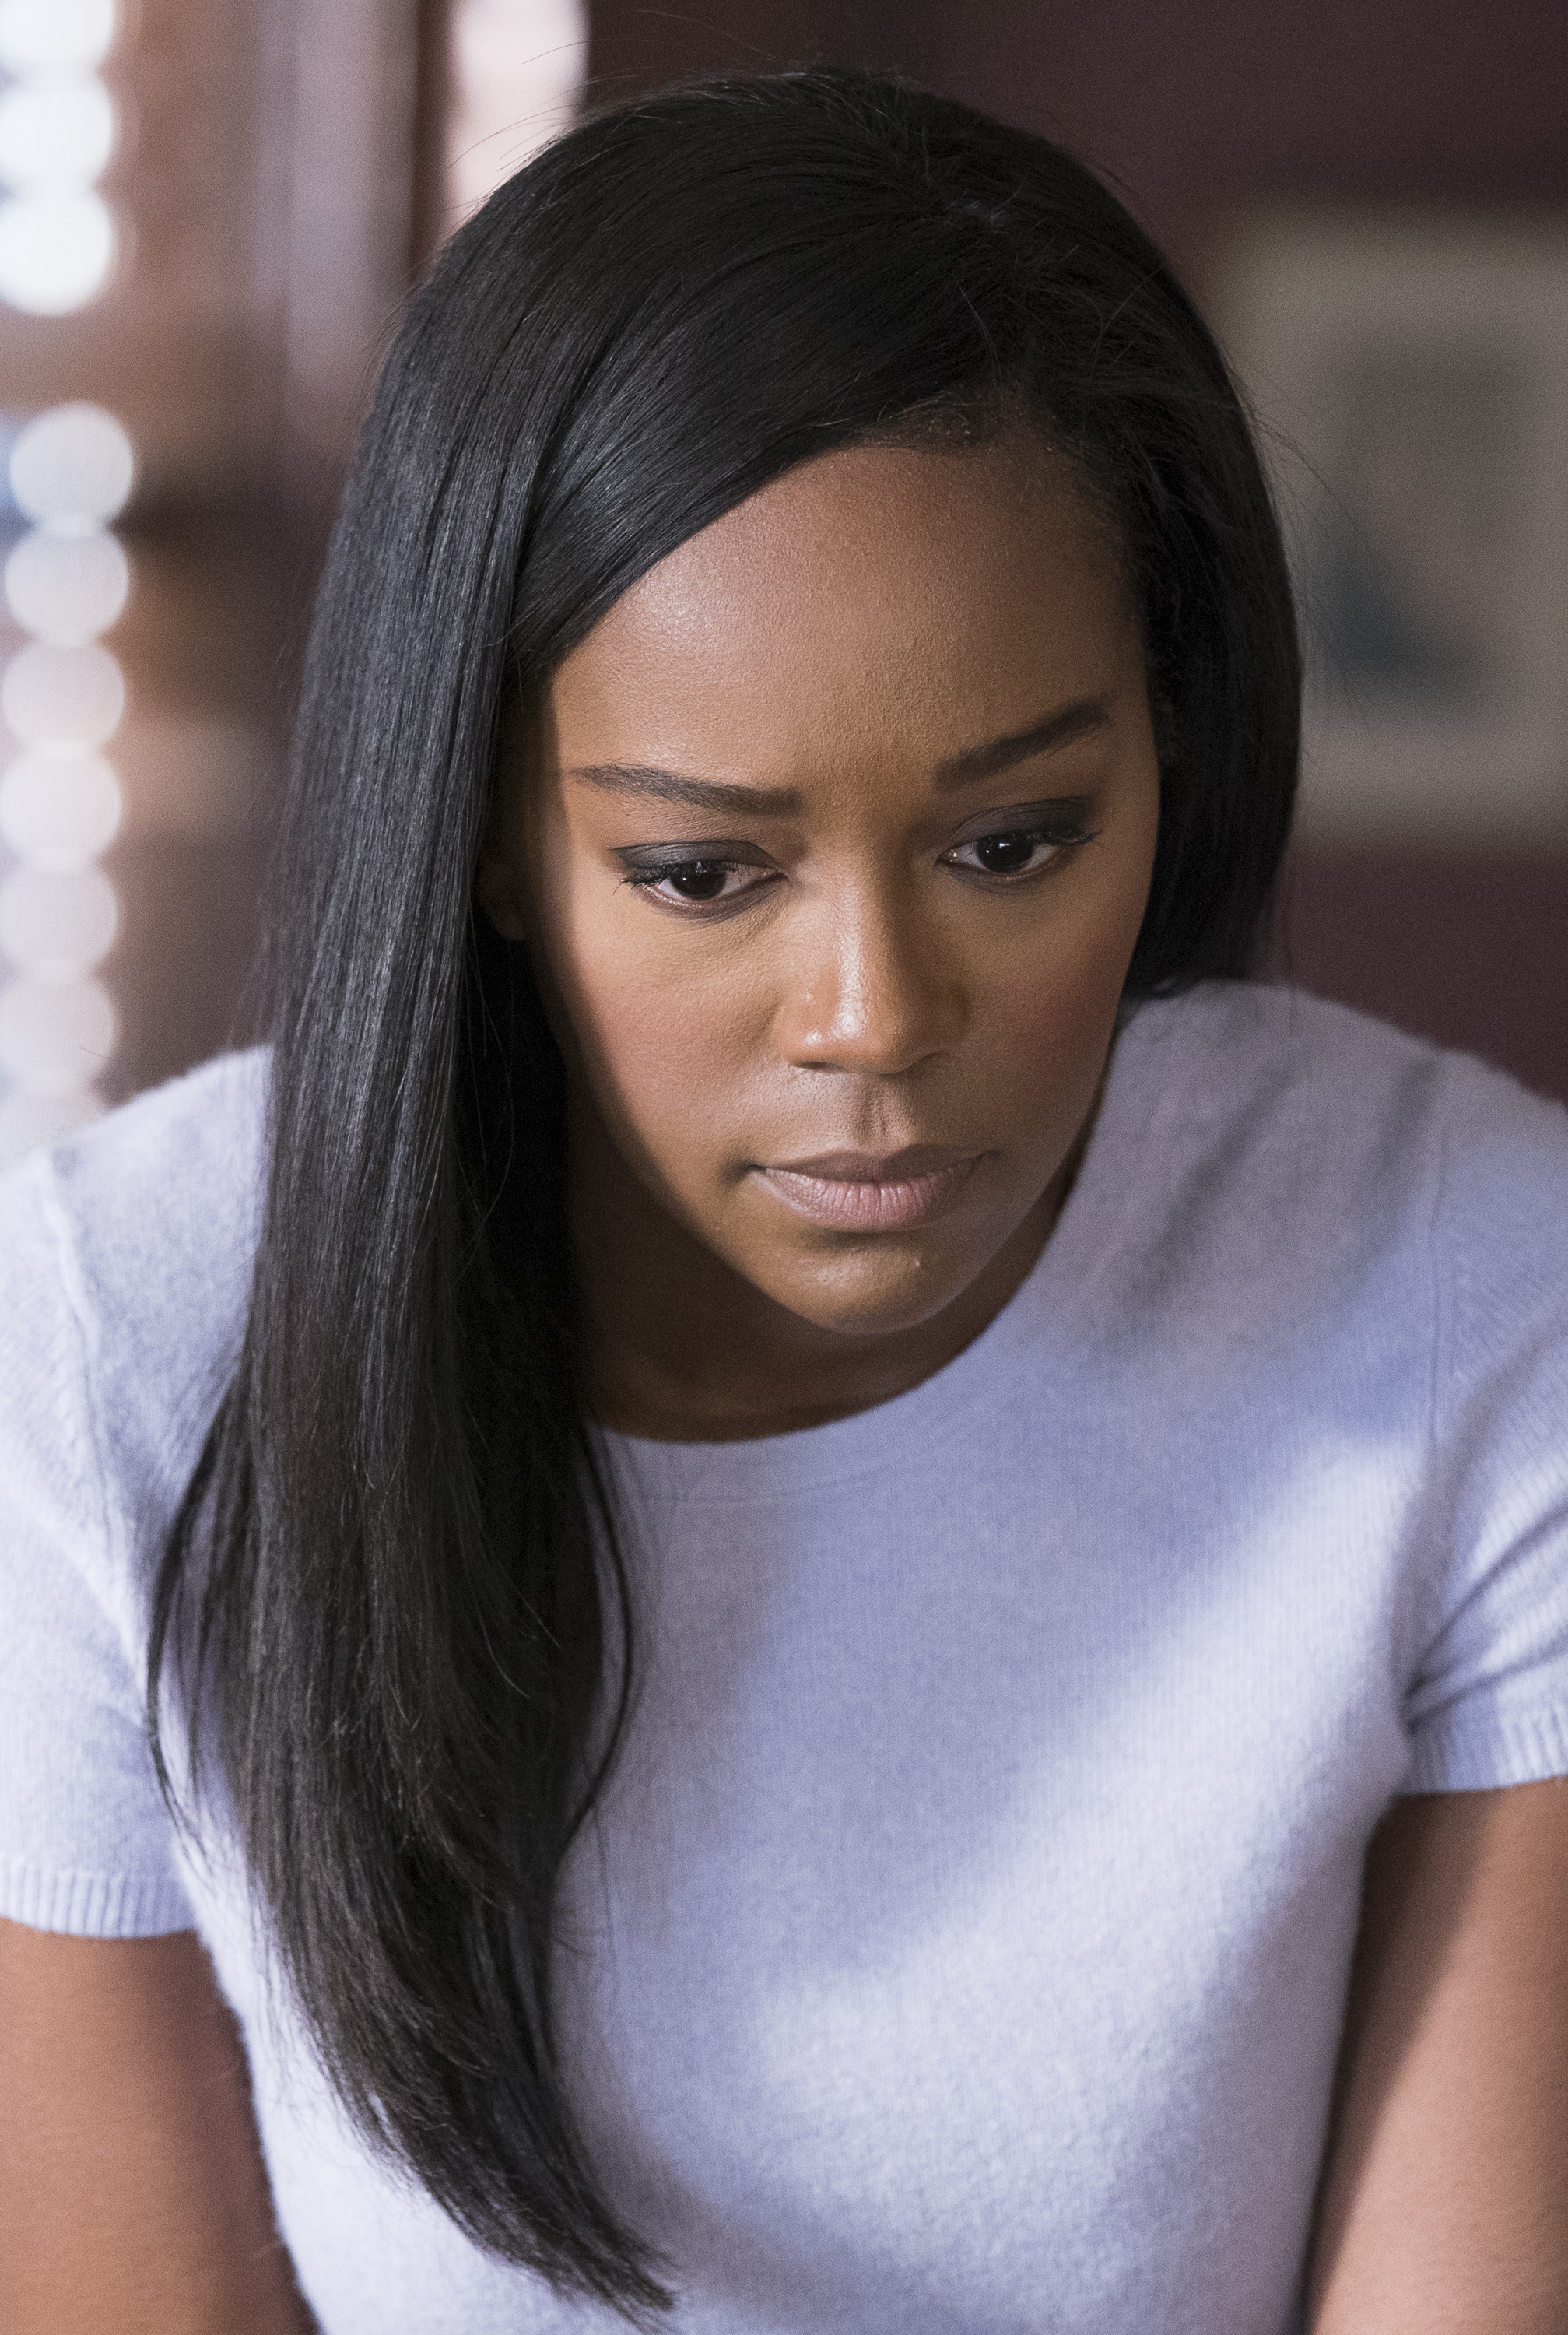 how to get away with murder finale, htgawm season finale spoilers